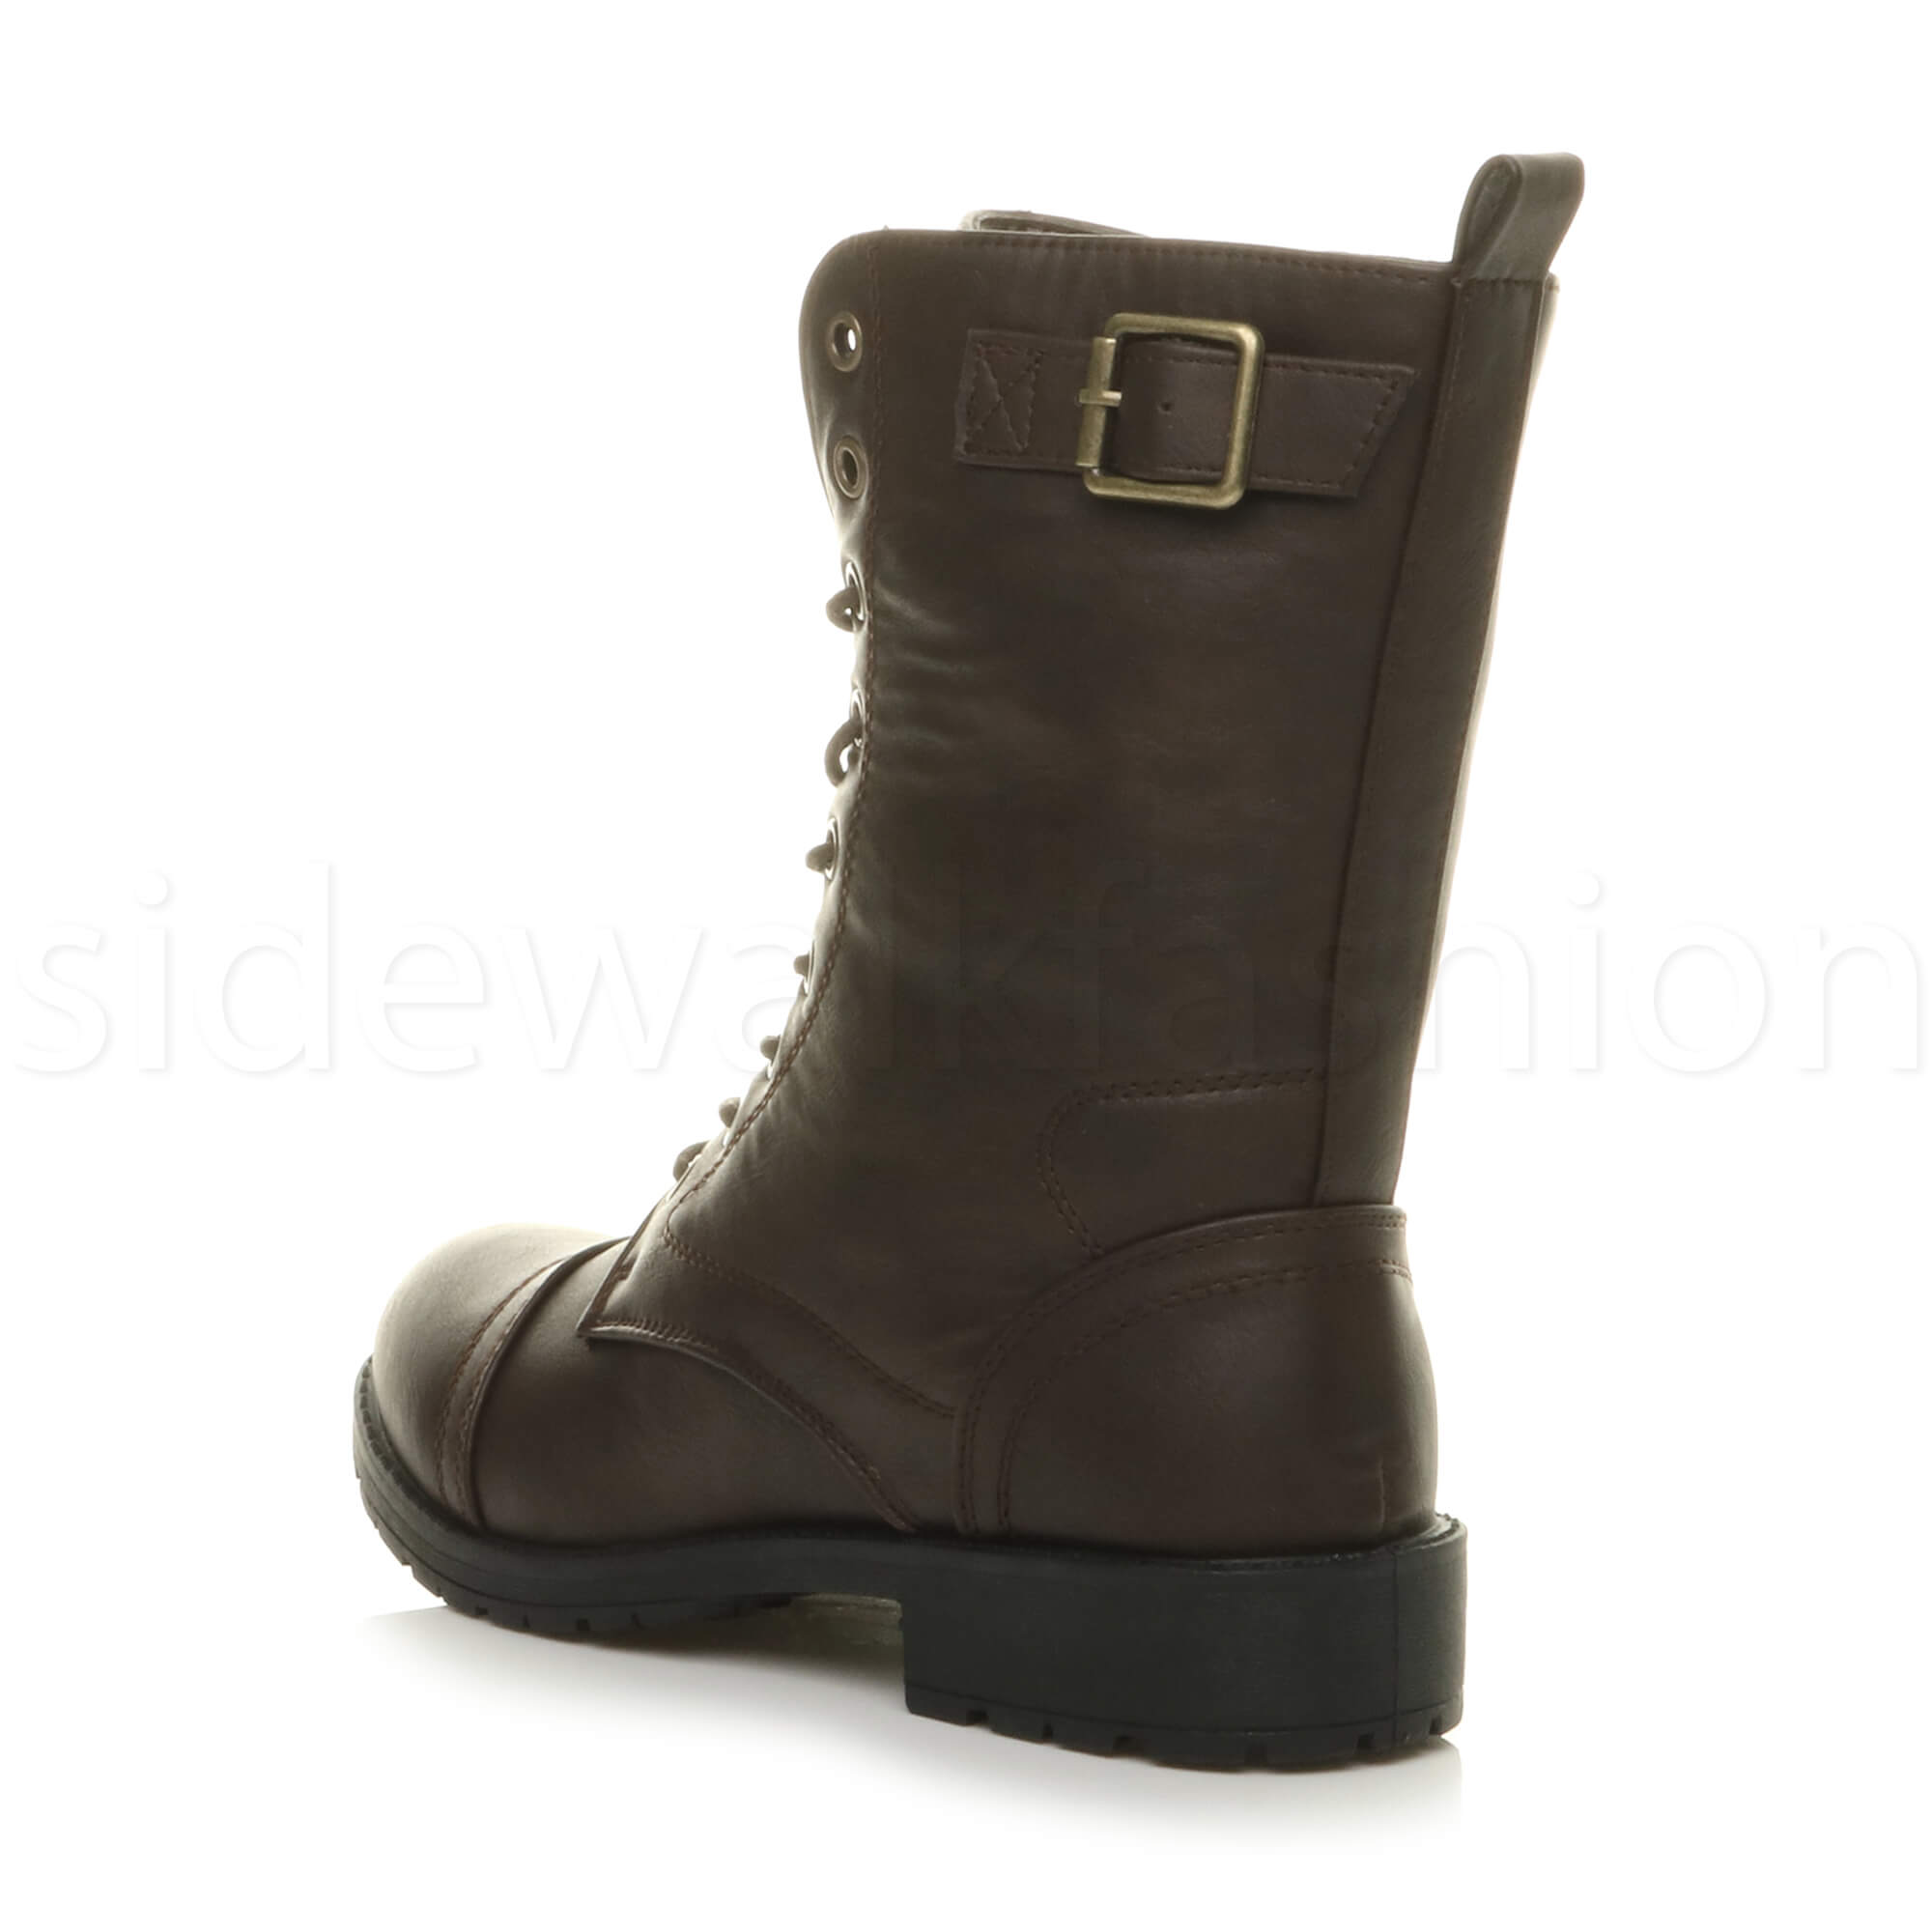 Womens-ladies-low-heel-flat-lace-up-zip-combat-biker-military-ankle-boots-size thumbnail 45